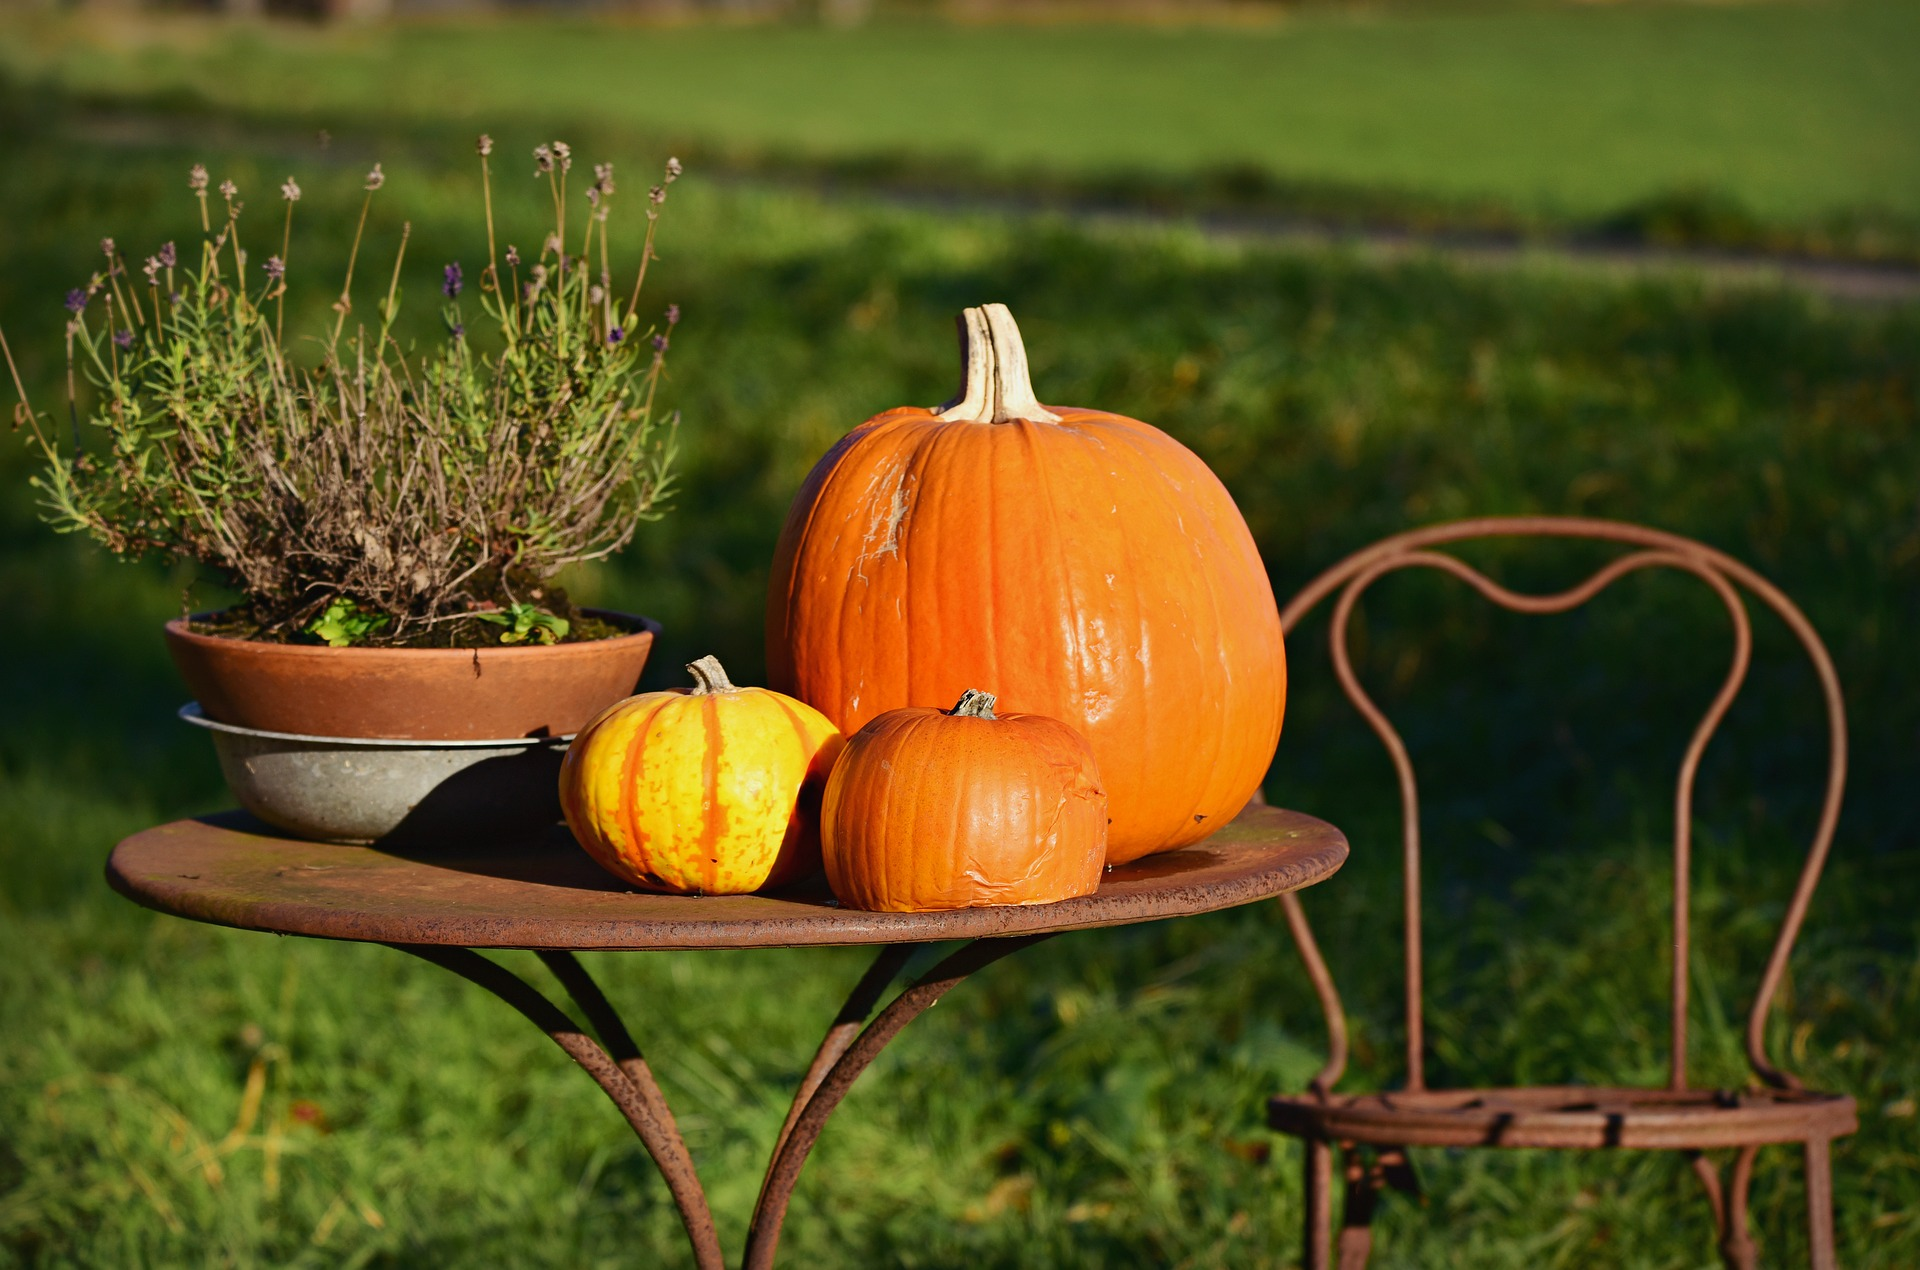 Photo of Pumpkins on a Rusty Table